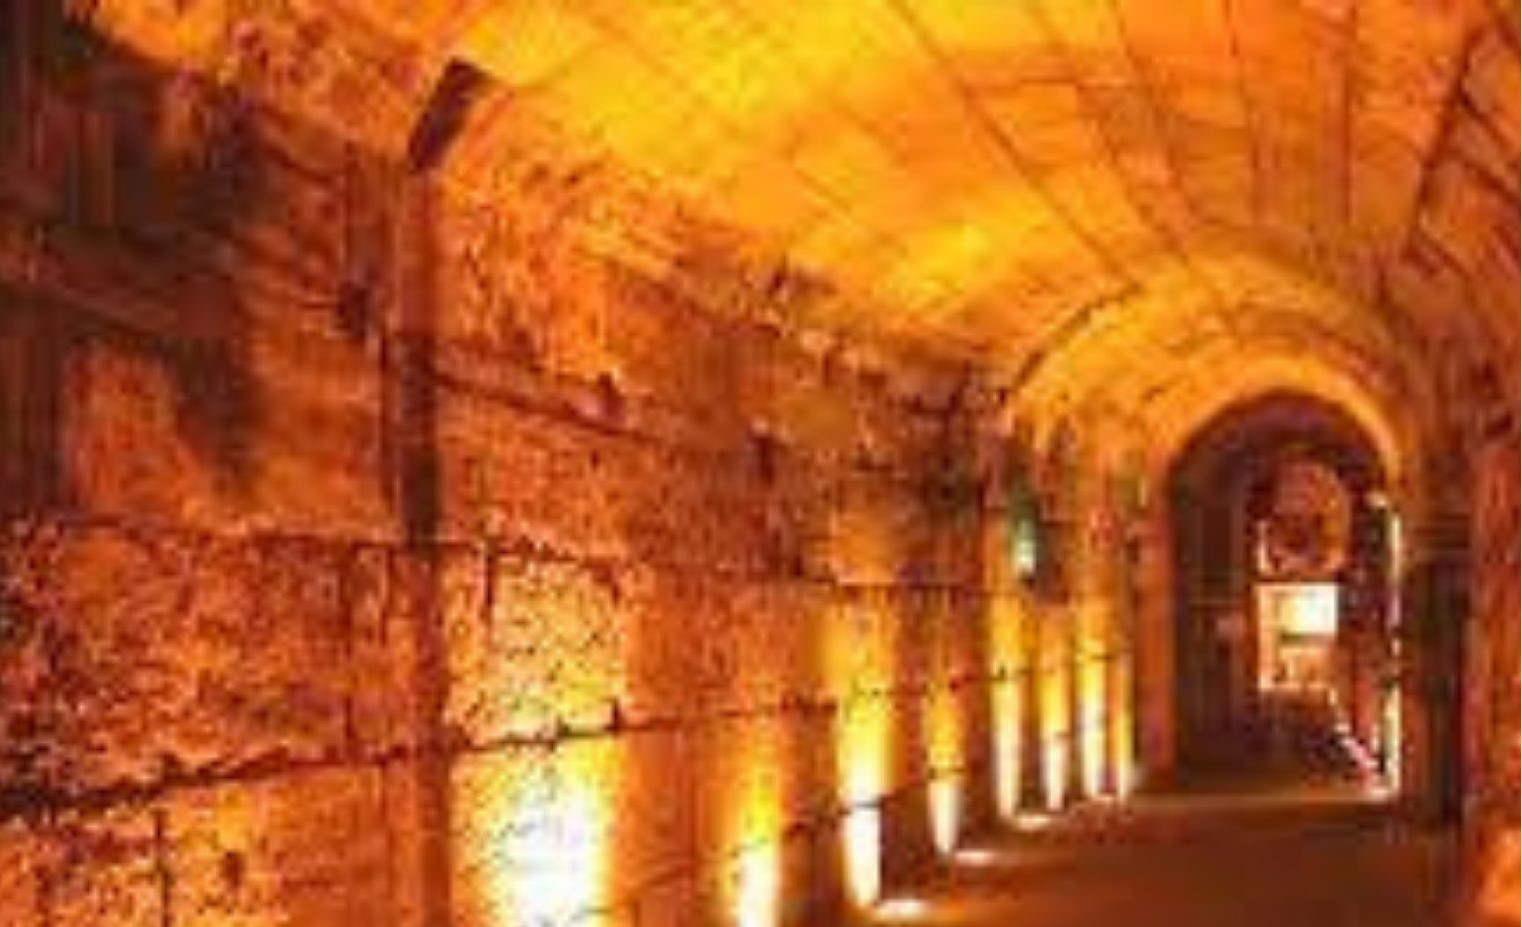 Virtual tour of the Kotel tunnels